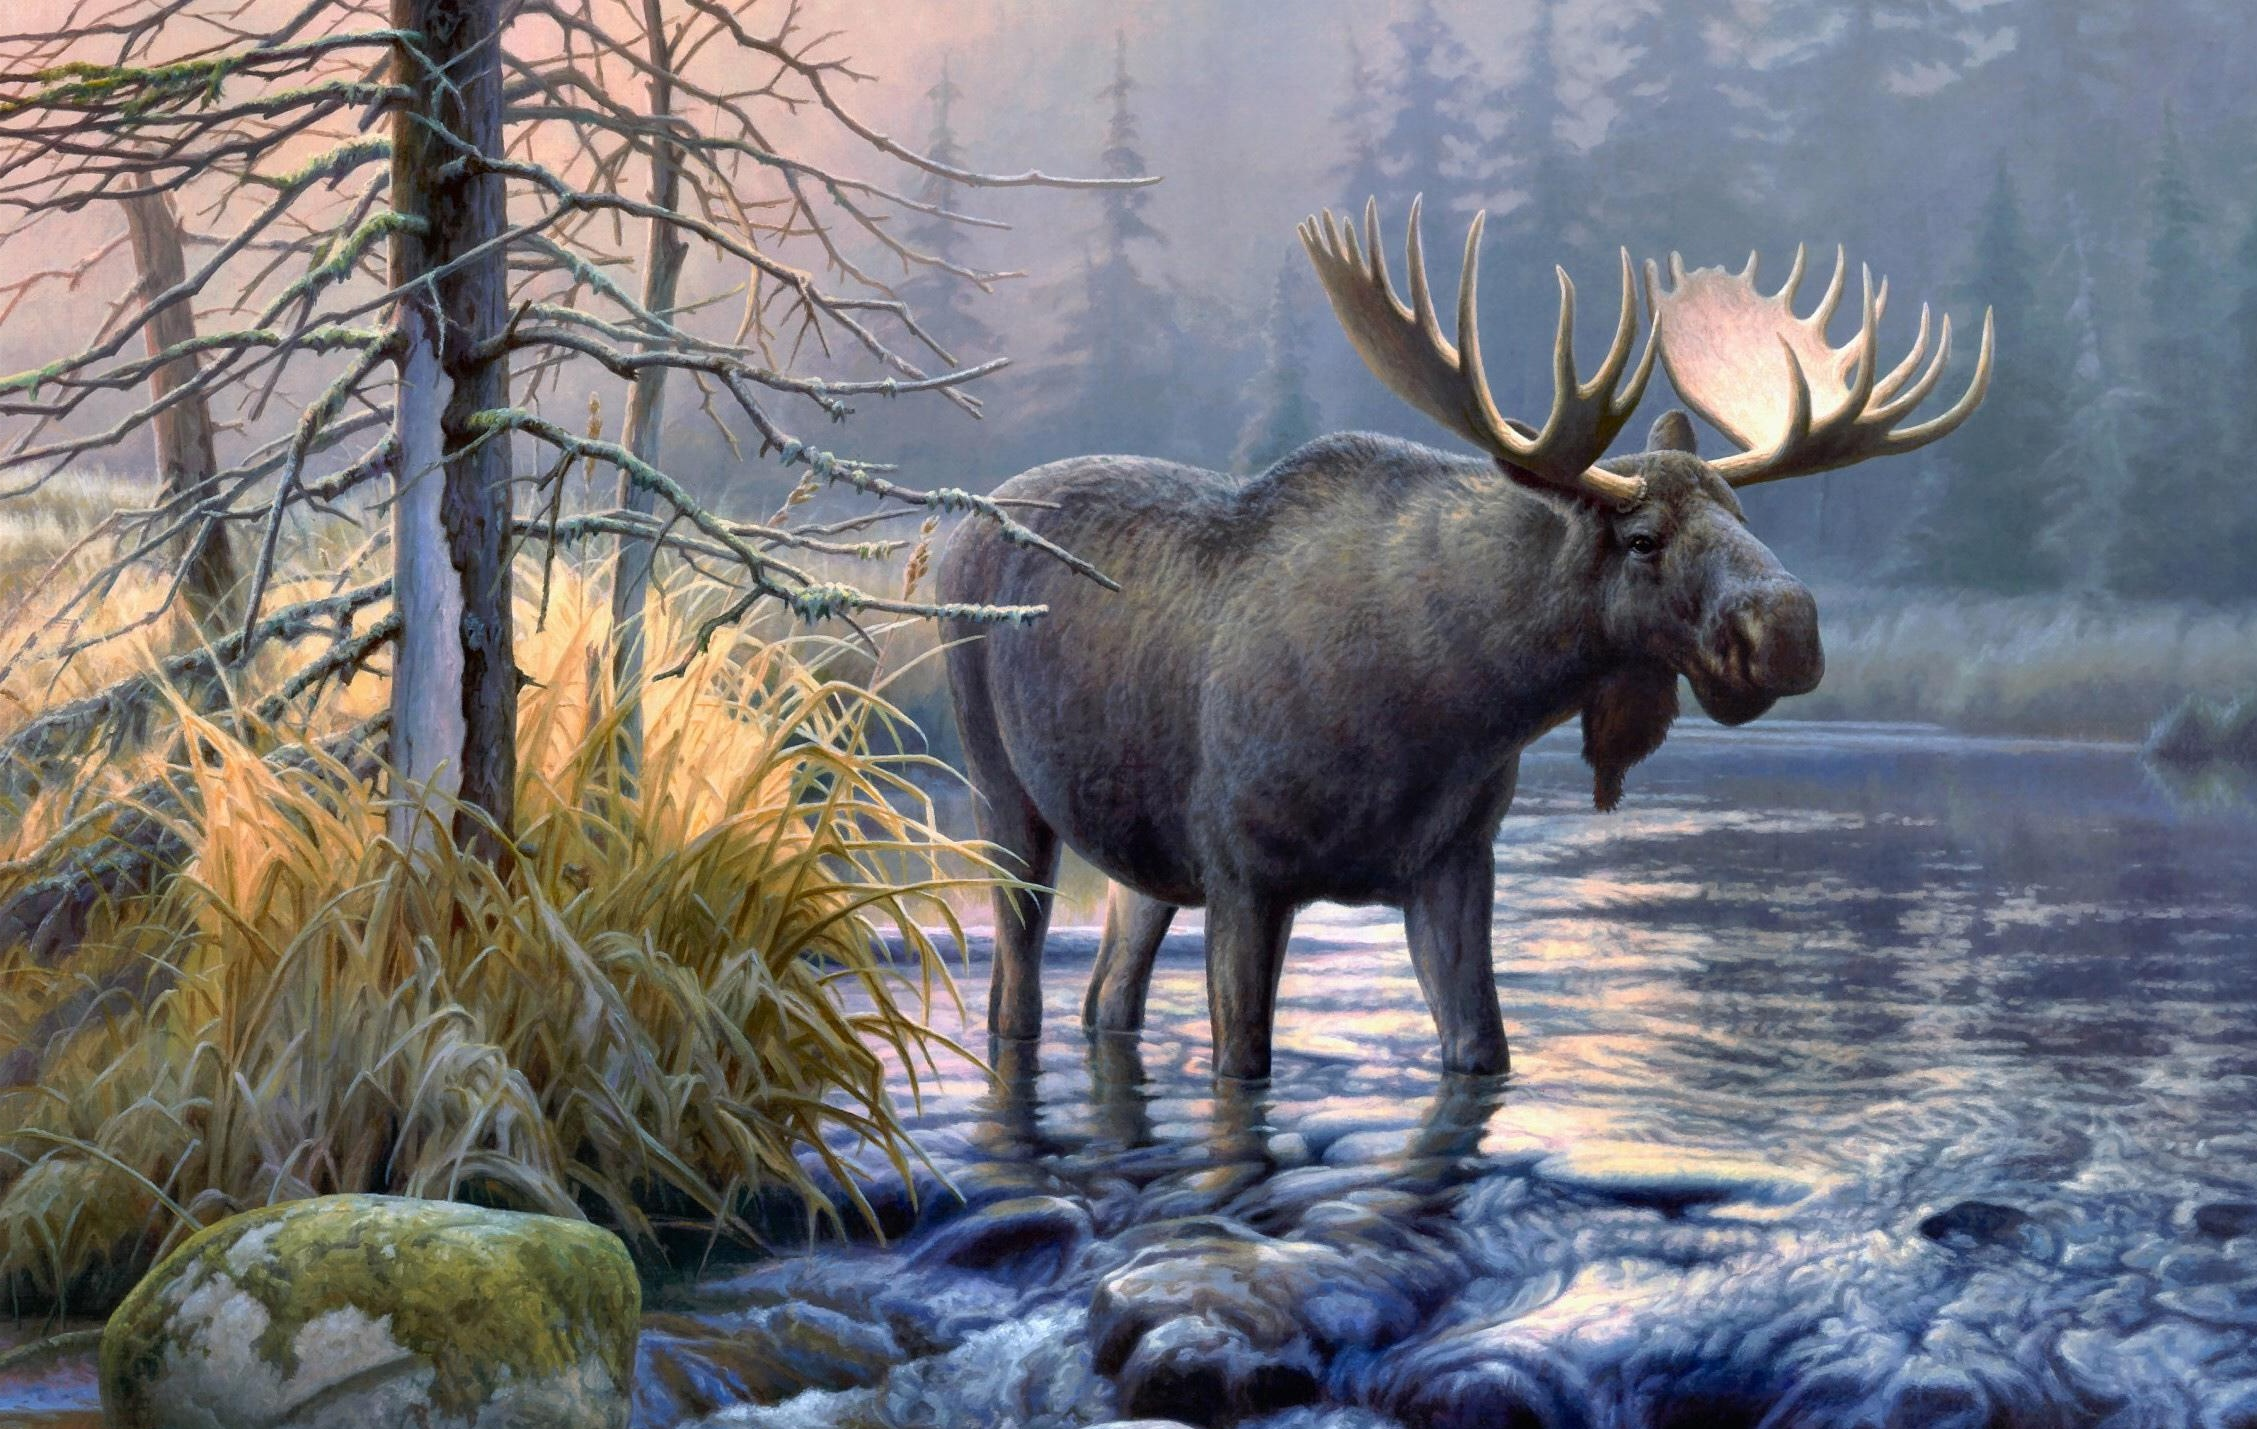 moose hd wallpaper - photo #30